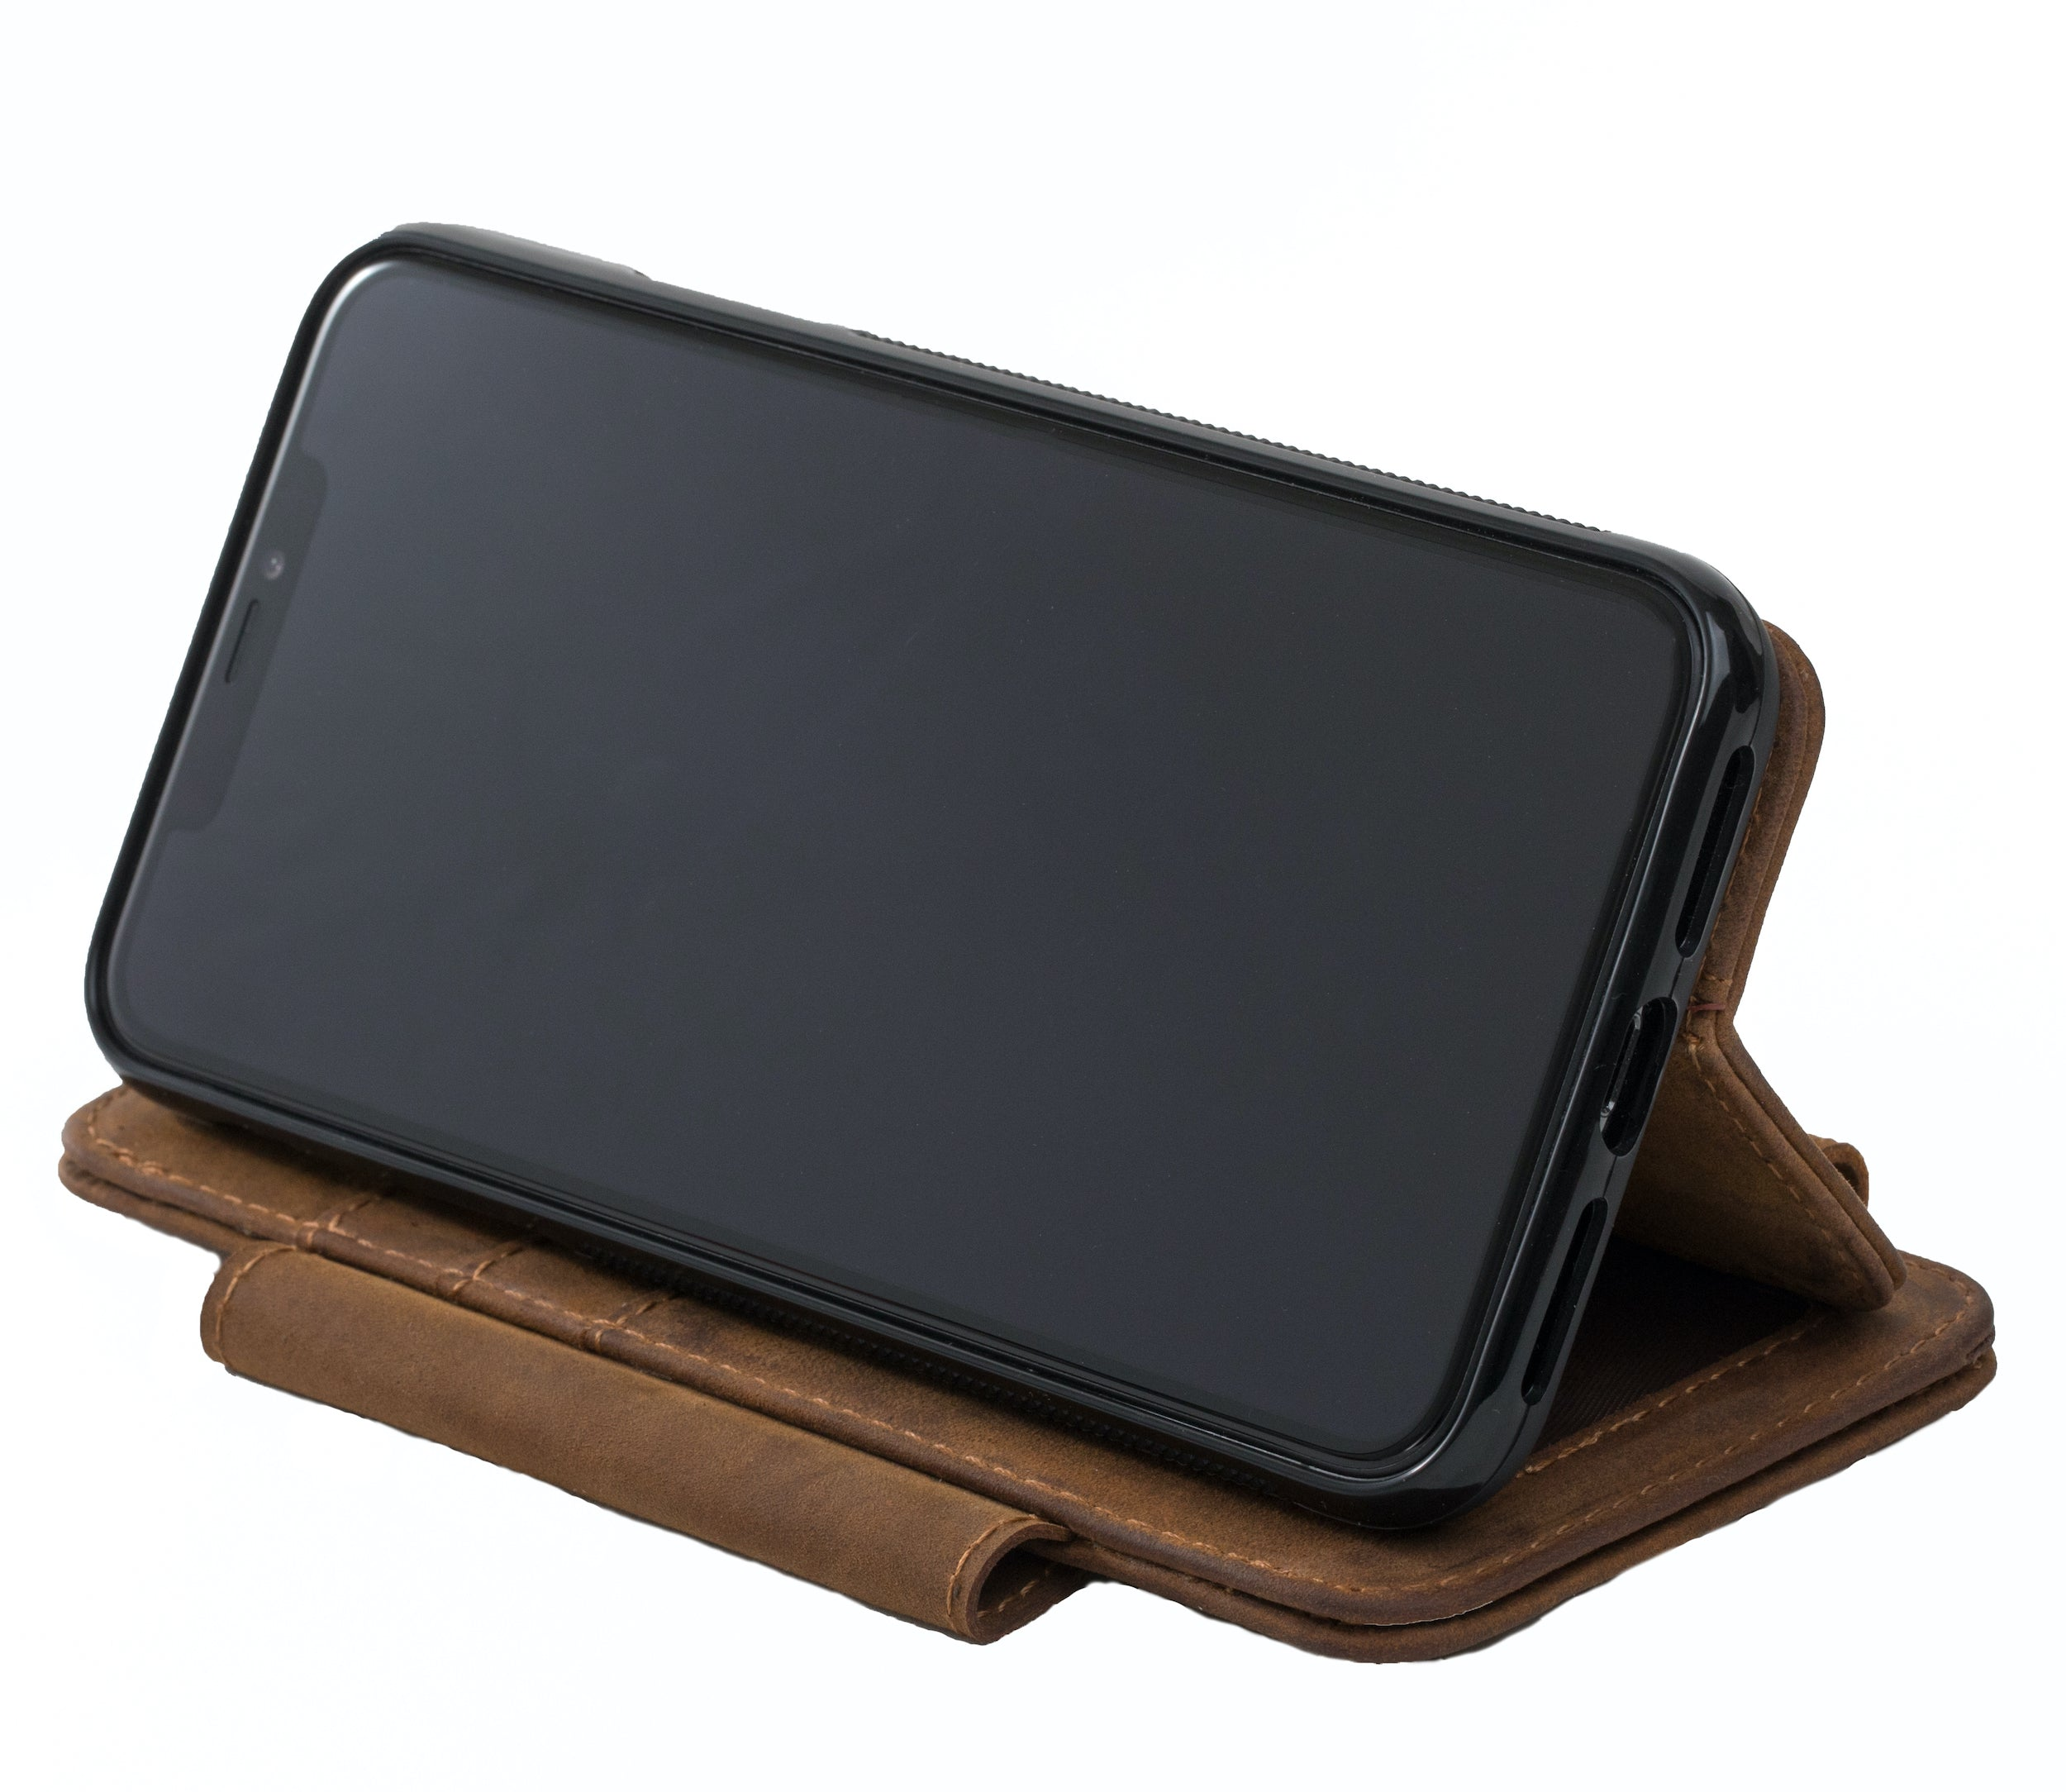 sport-brown iphone-11-pro-max